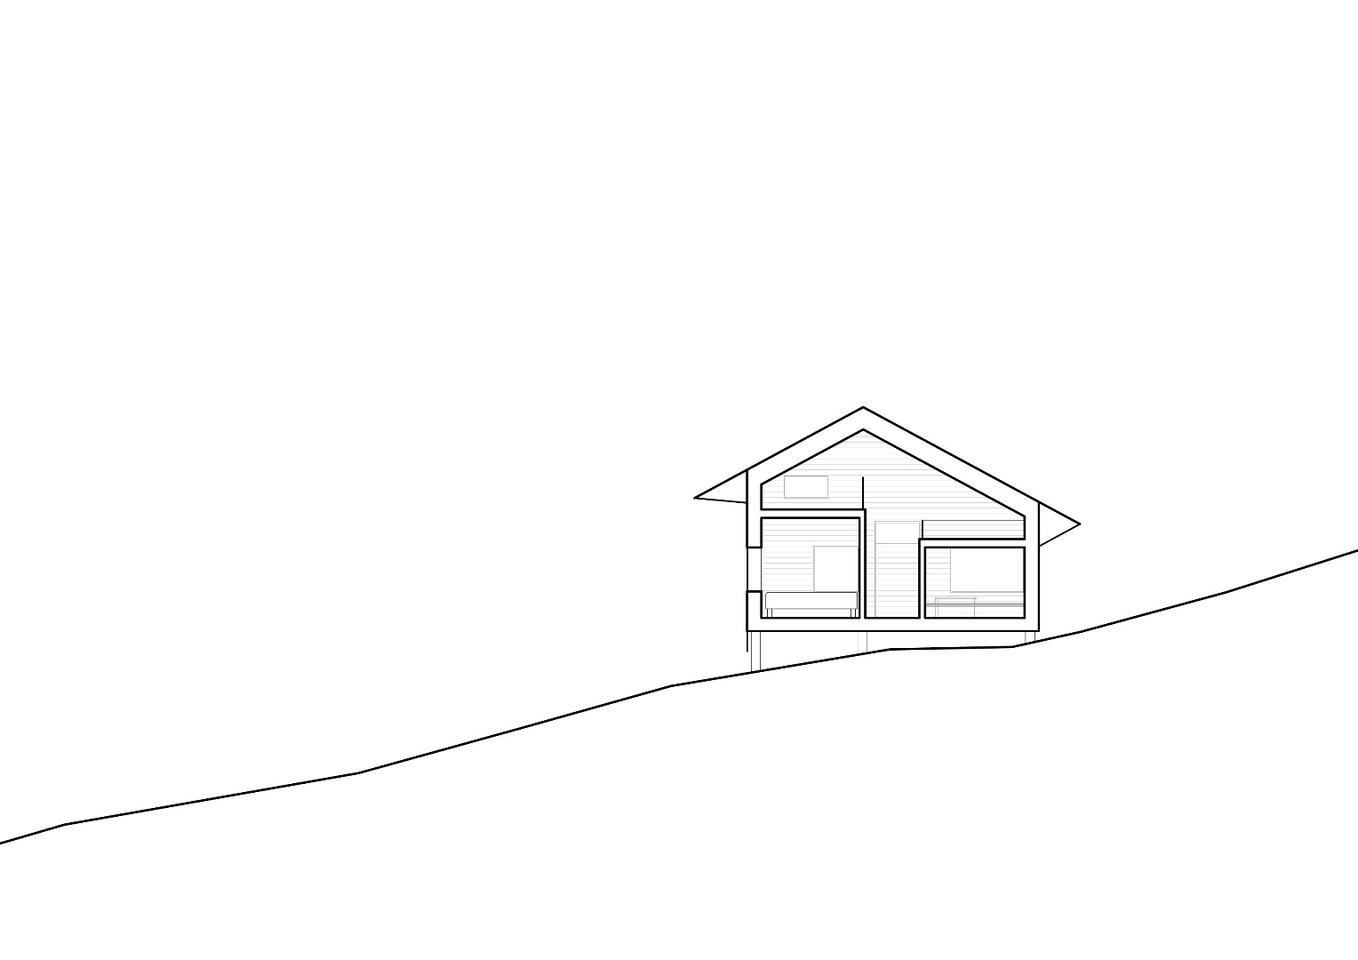 Architectural drawing of Cabin Ustaoset